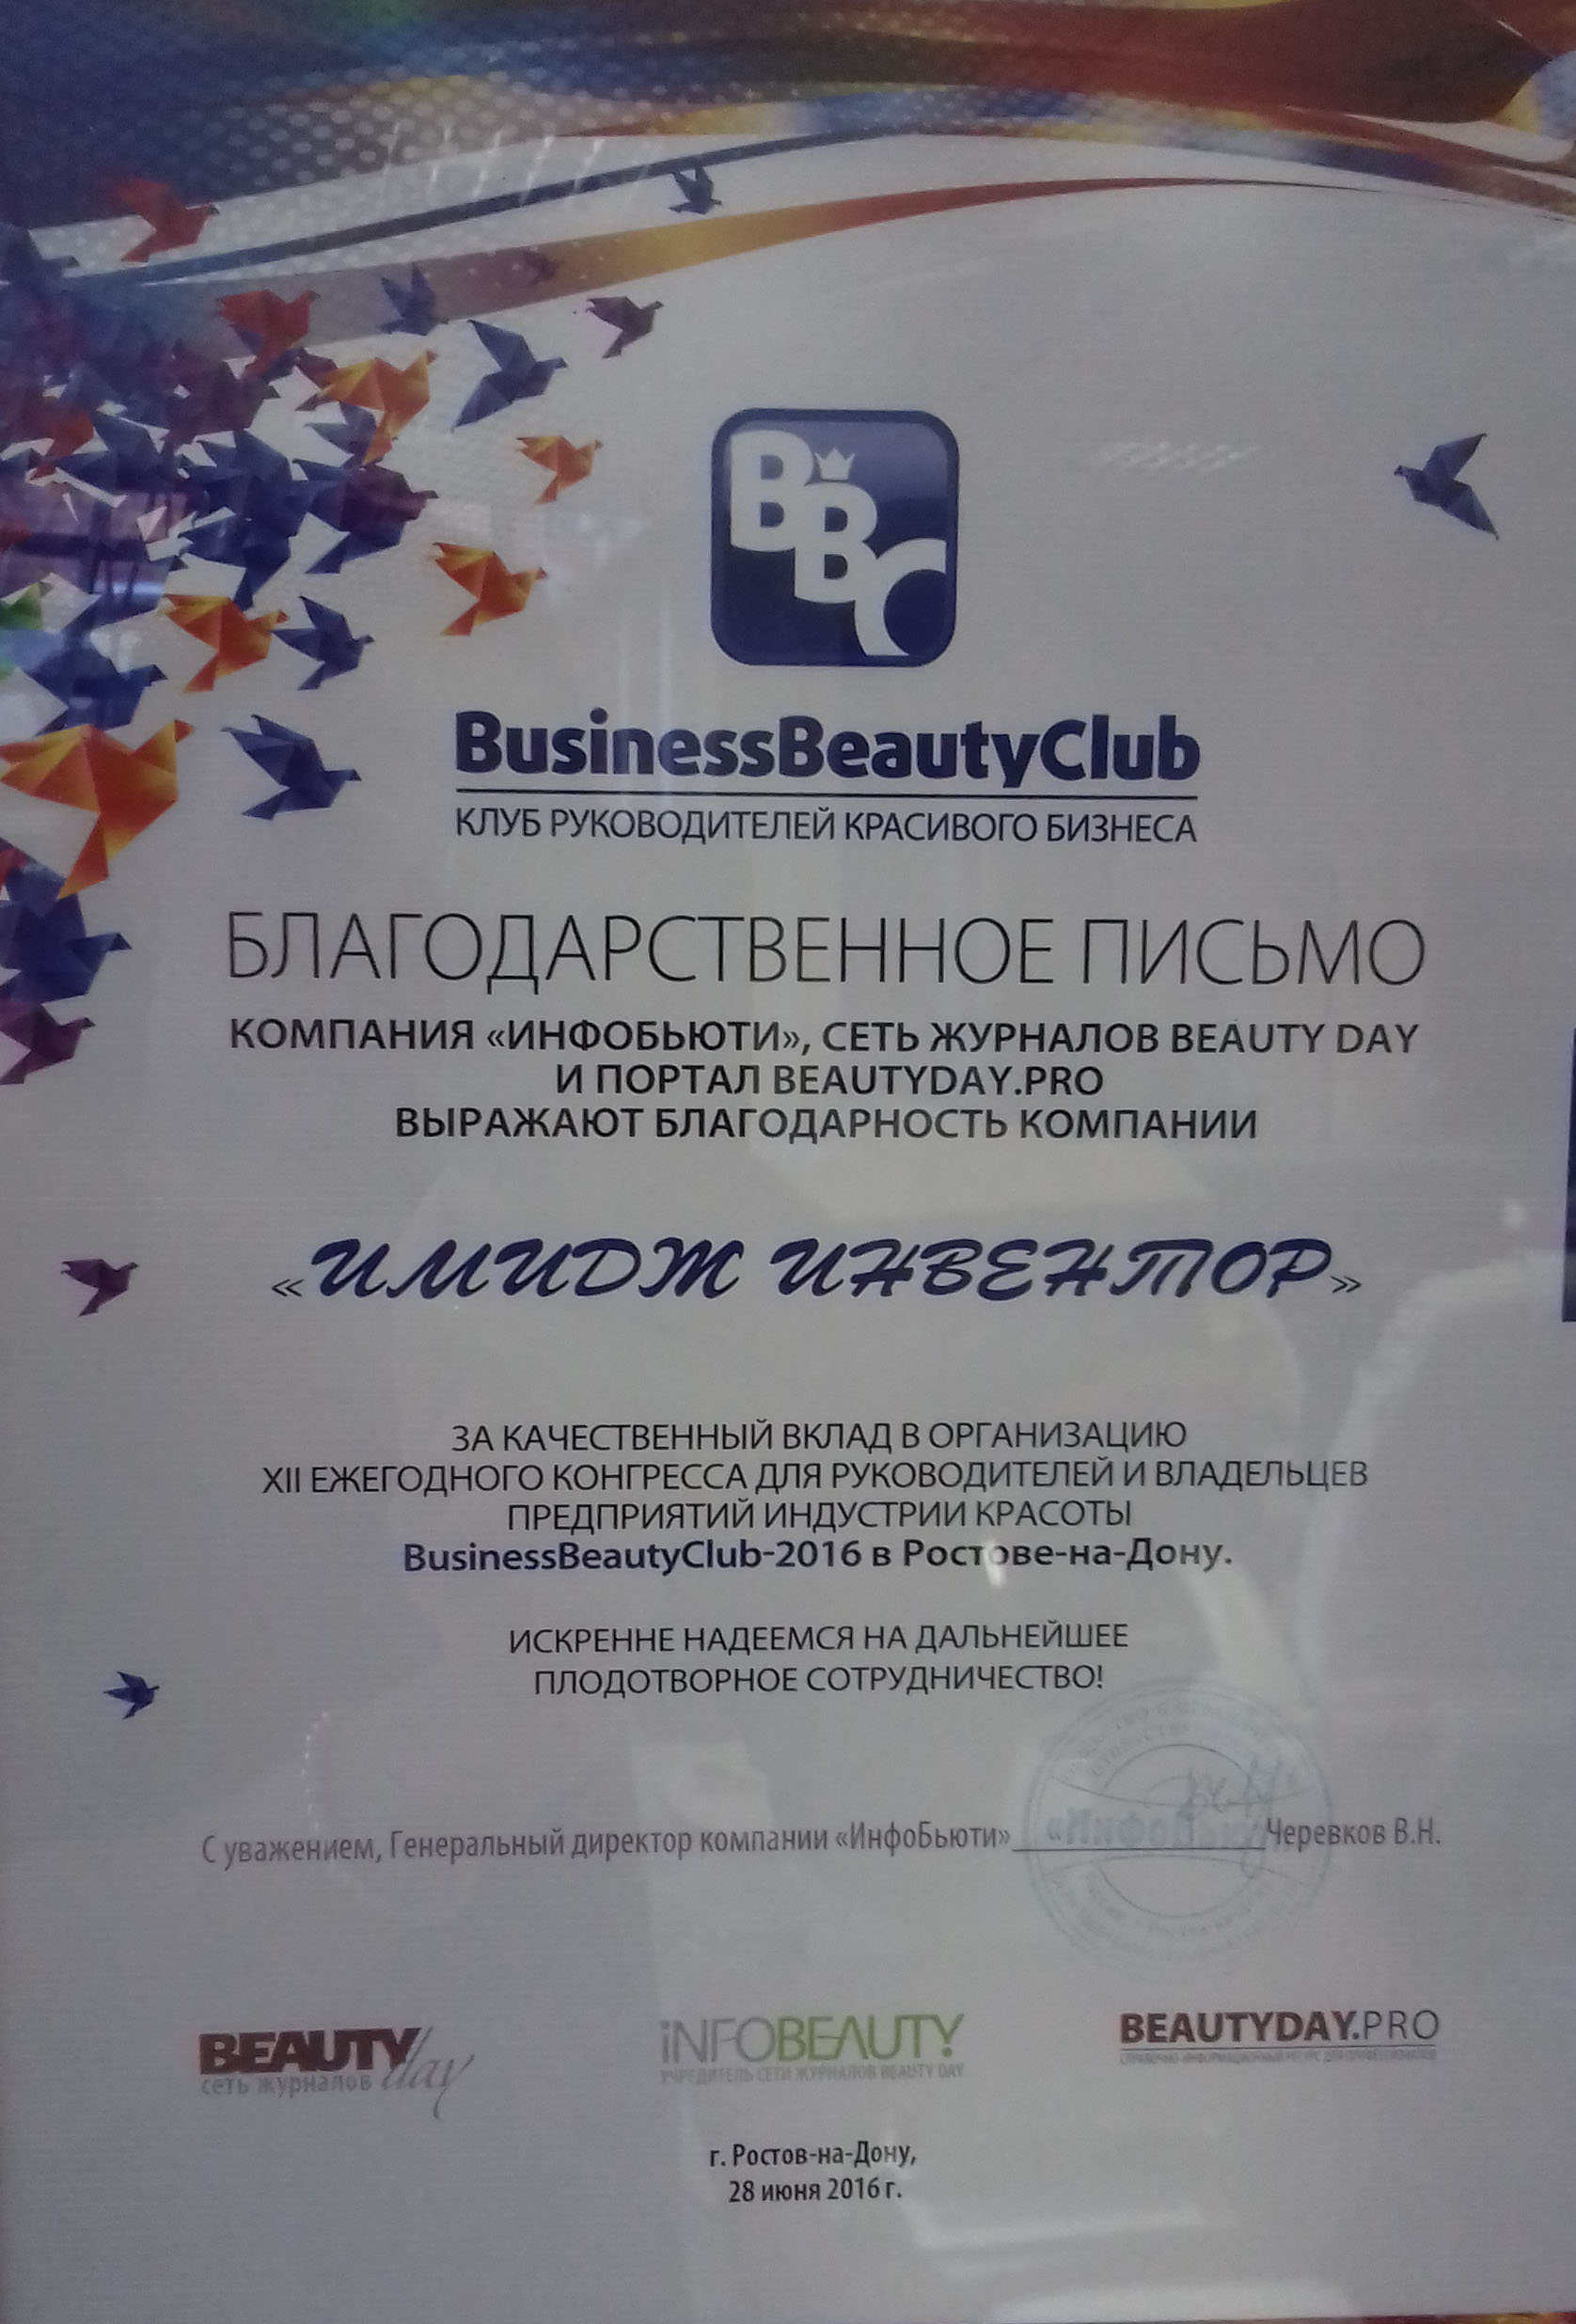 BusinessBeautyClub-2016